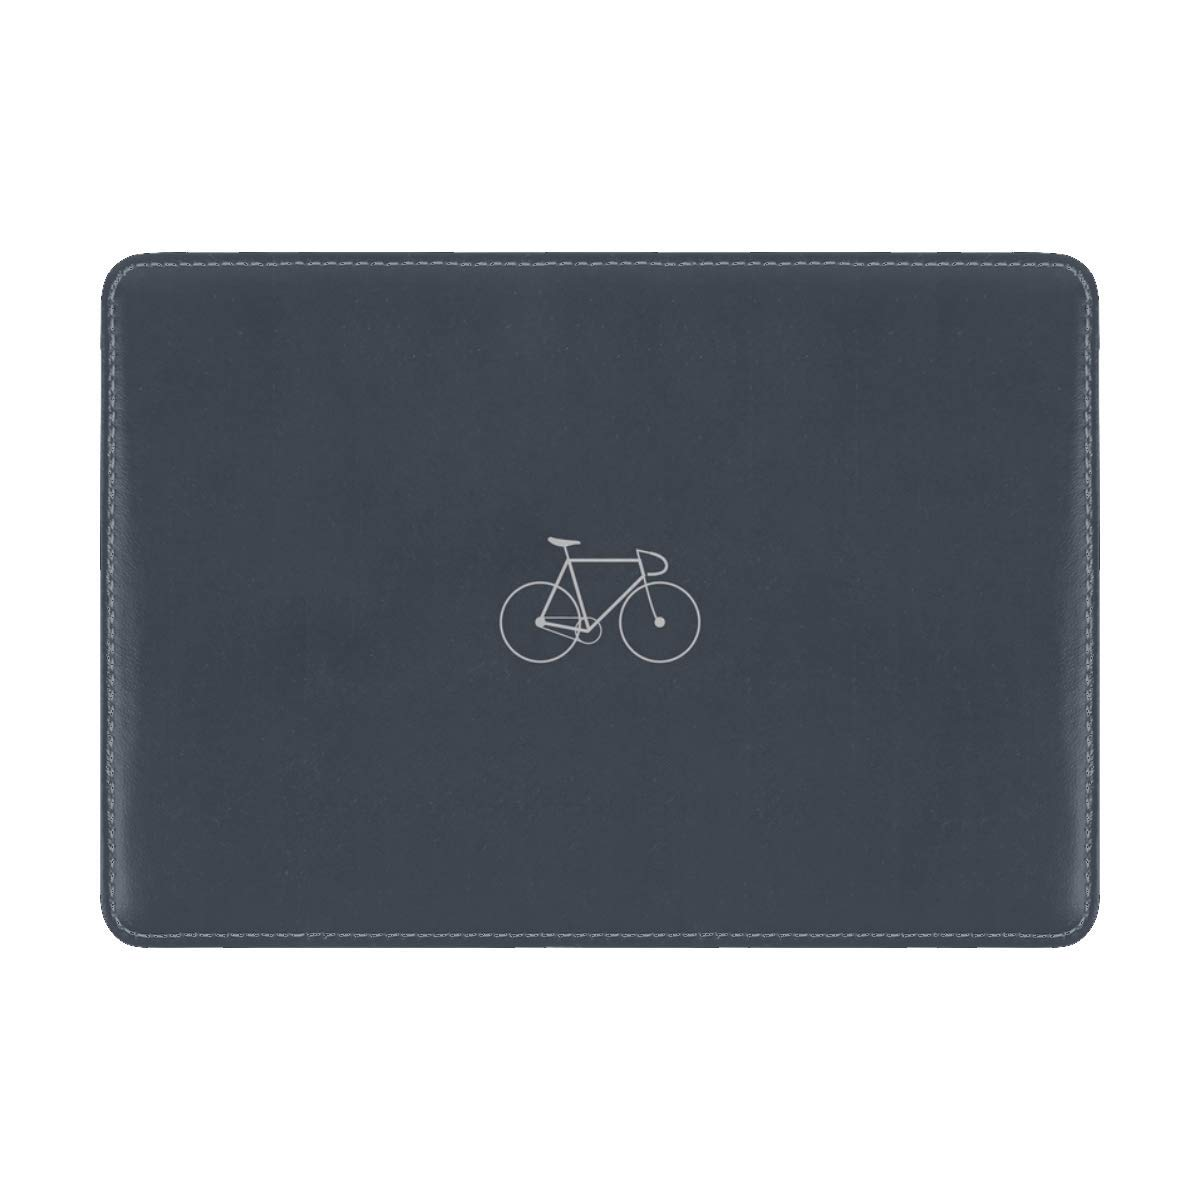 Bicycle Minimalism Gray Leather Passport Holder Cover Case Travel One Pocket